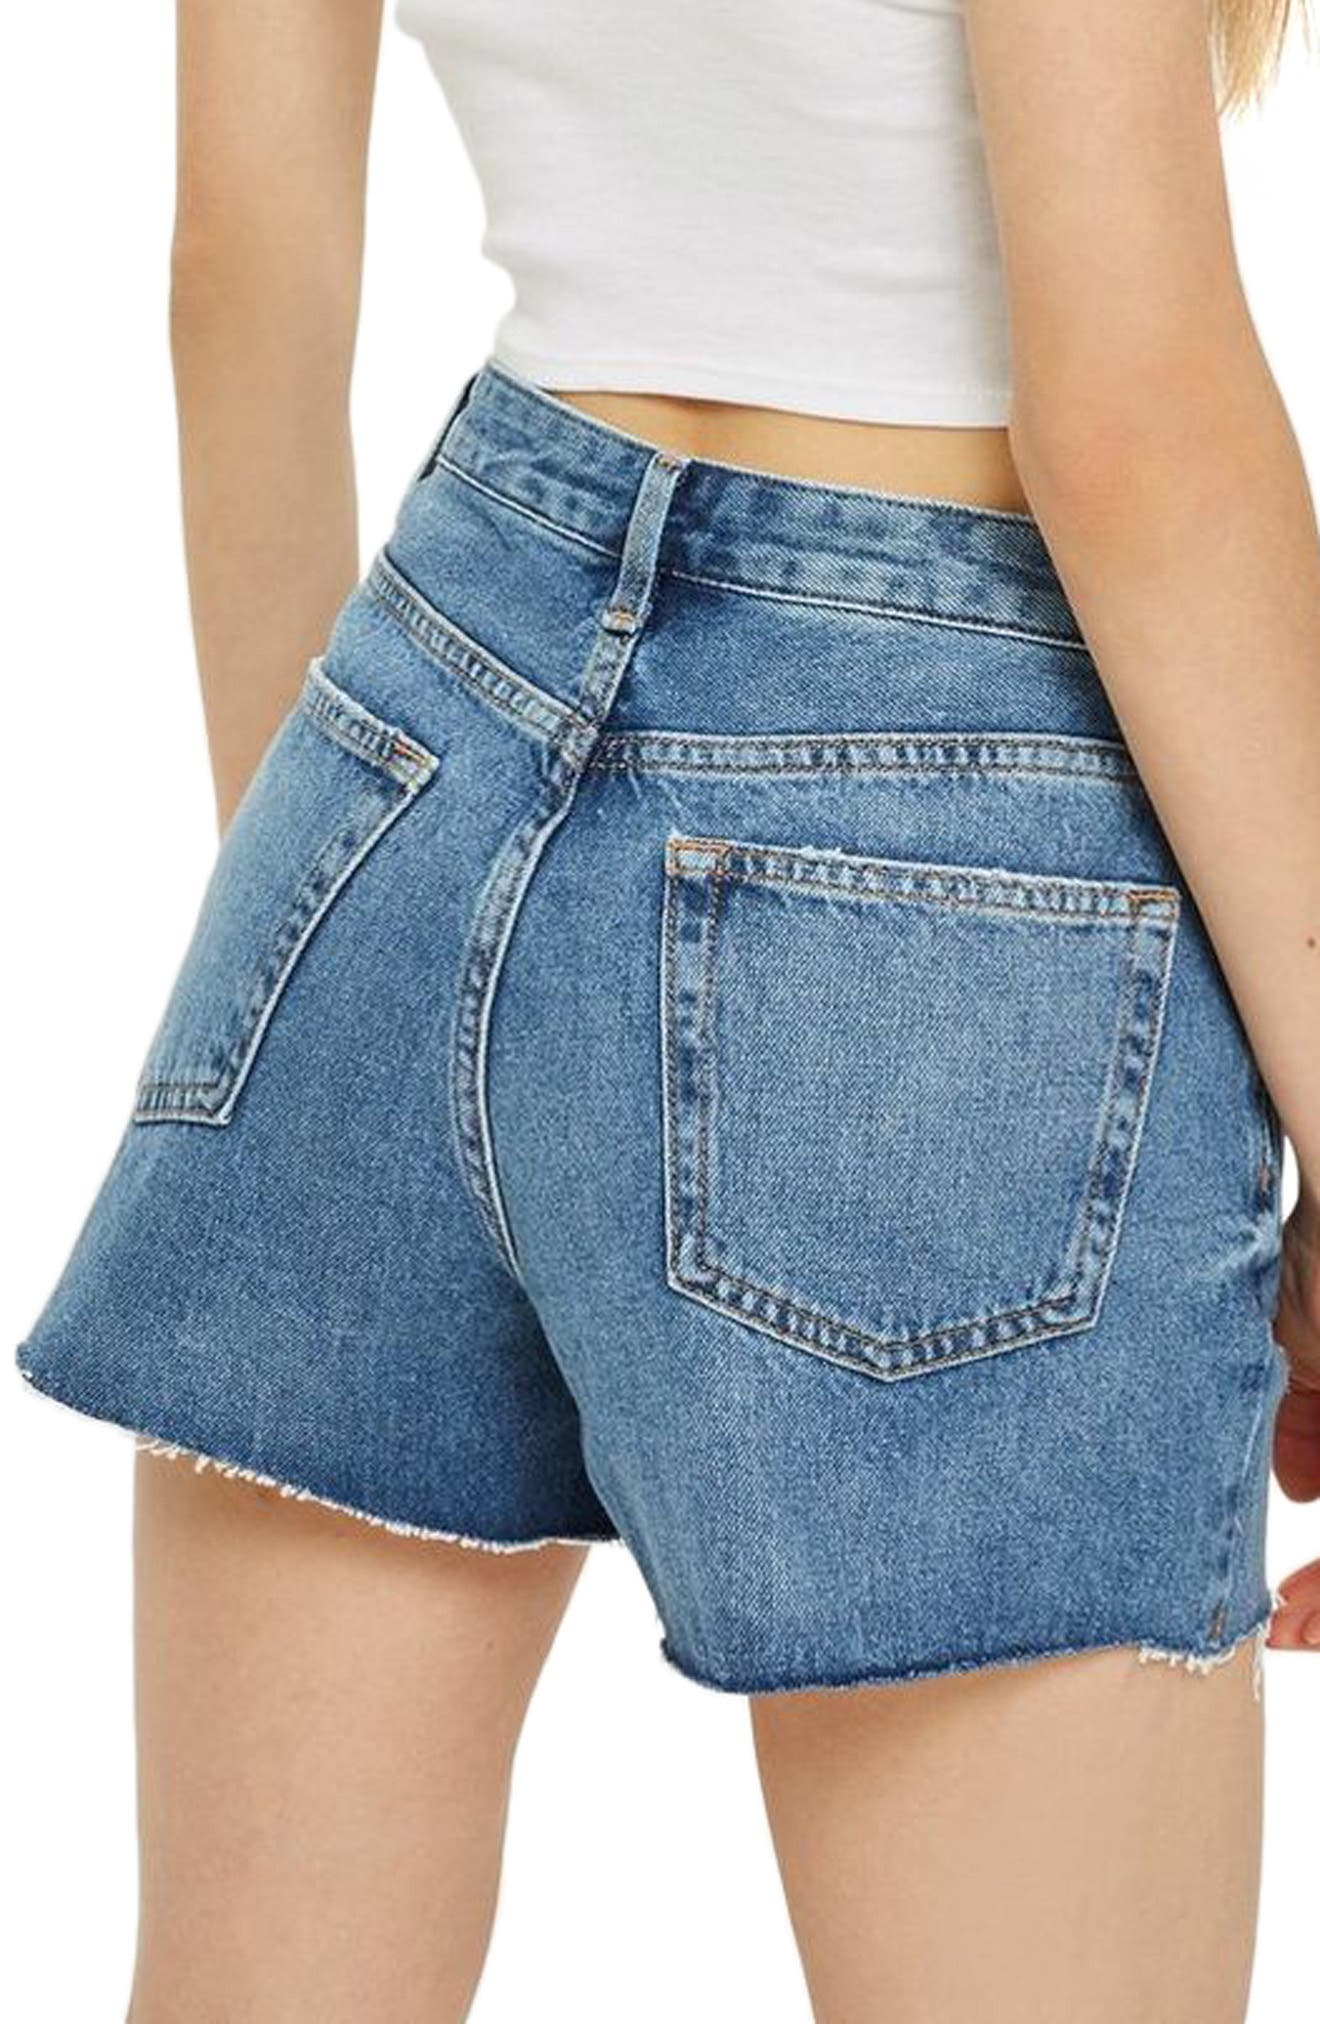 Ashley Ripped Boyfriend Shorts,                             Alternate thumbnail 2, color,                             MID DENIM